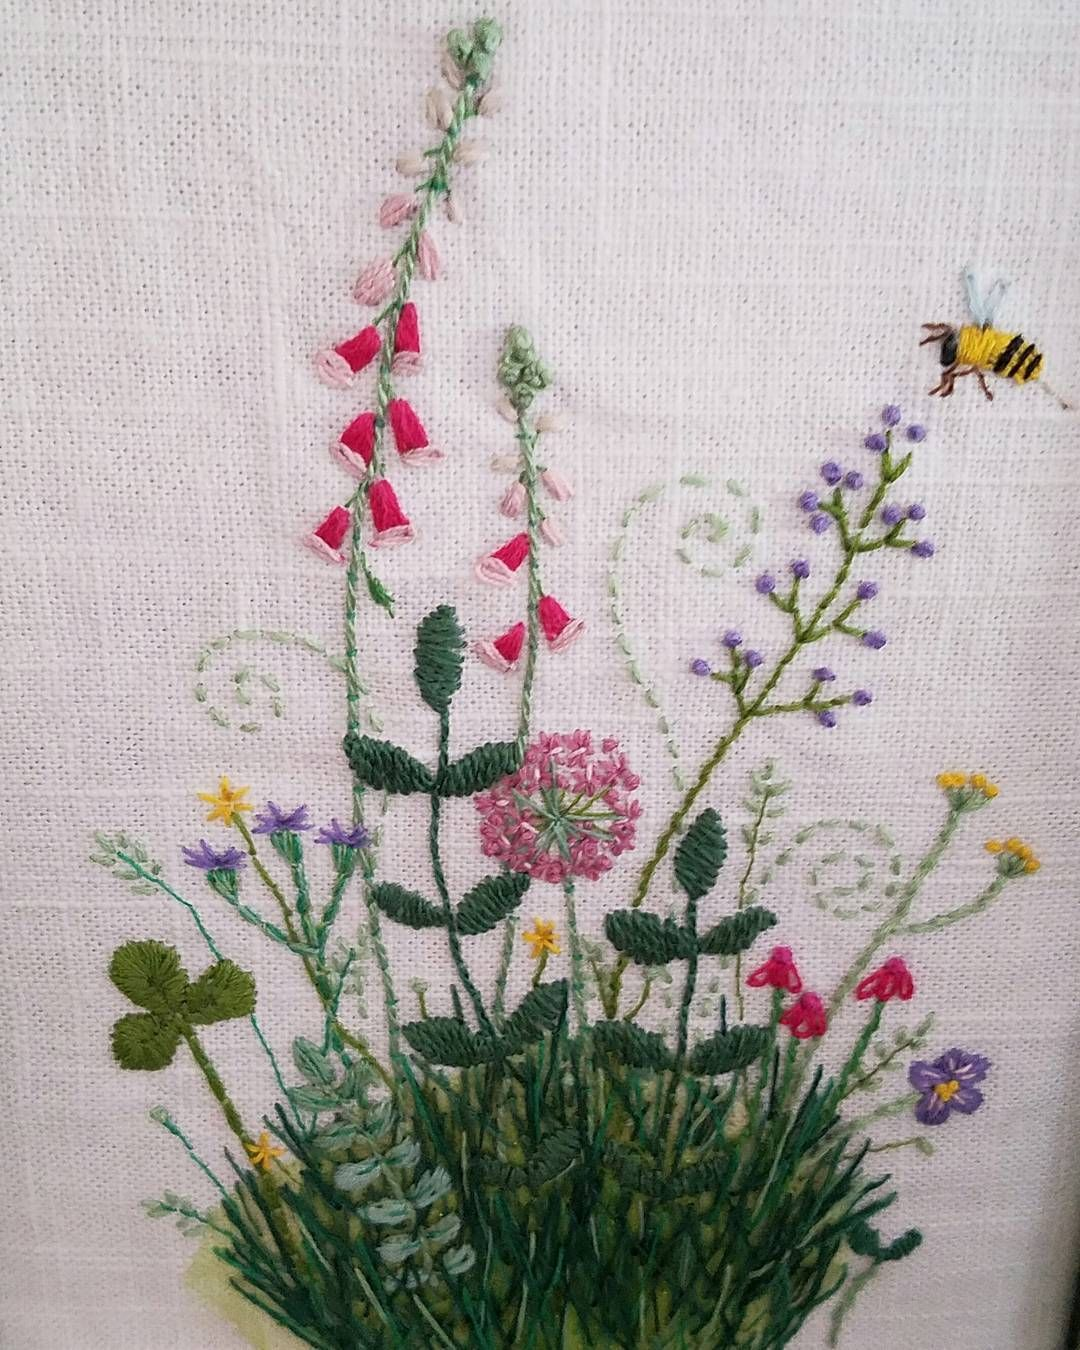 From one of my favorite embroidery books The Embroidered Garden by Kazuko Aoki 💕 I can't keep plants alive to save my life, so I embroider them instead 💕⚘🌸🌹🌱  #handembroidery #kazukoaoki #embroideredflowers #theembroideredgarden #wildflowerembroidery #stitchlove #handmade